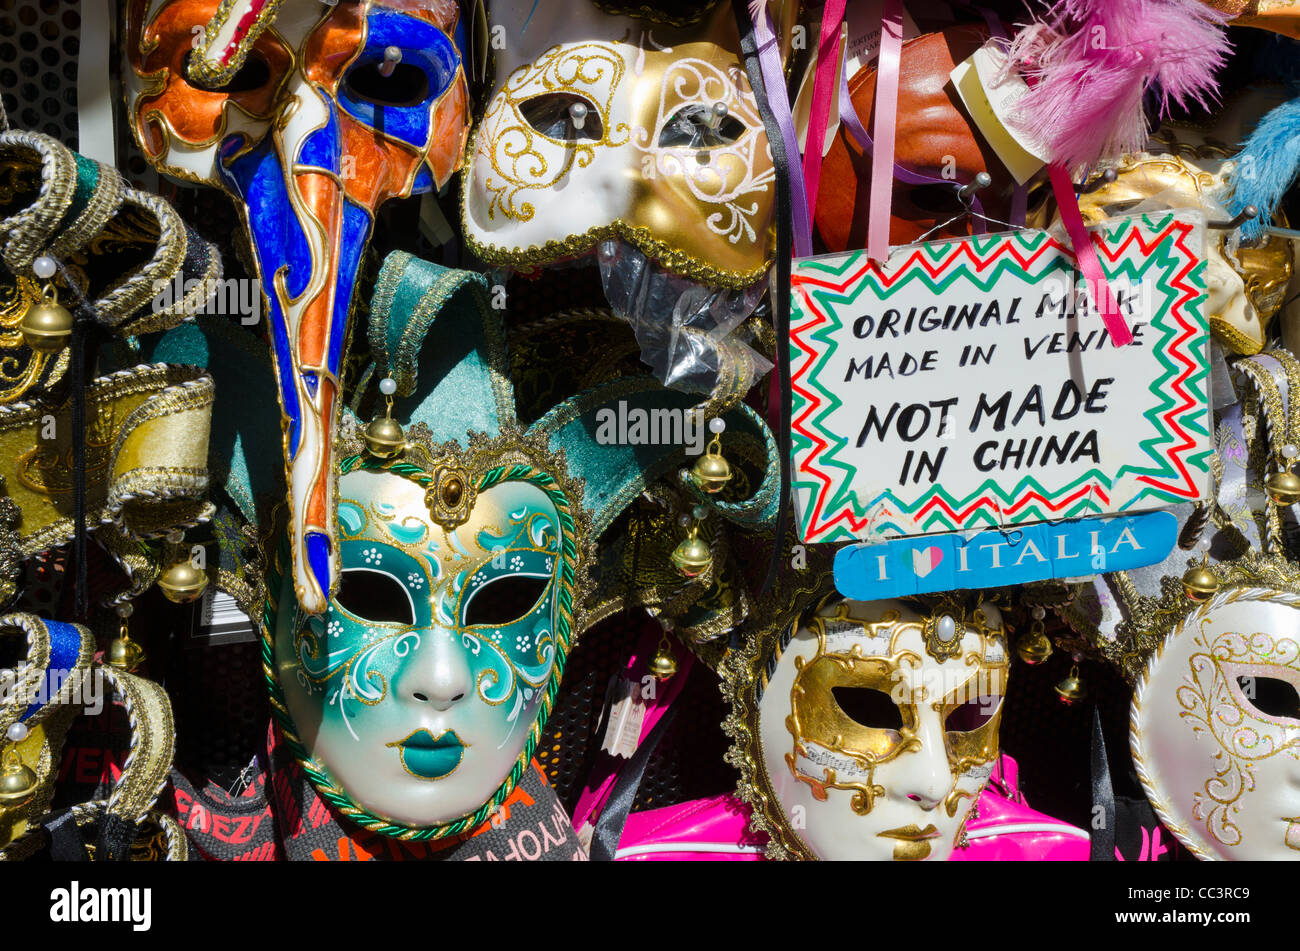 Italy, Veneto, Venice, Venetian masks for sale Stock Photo